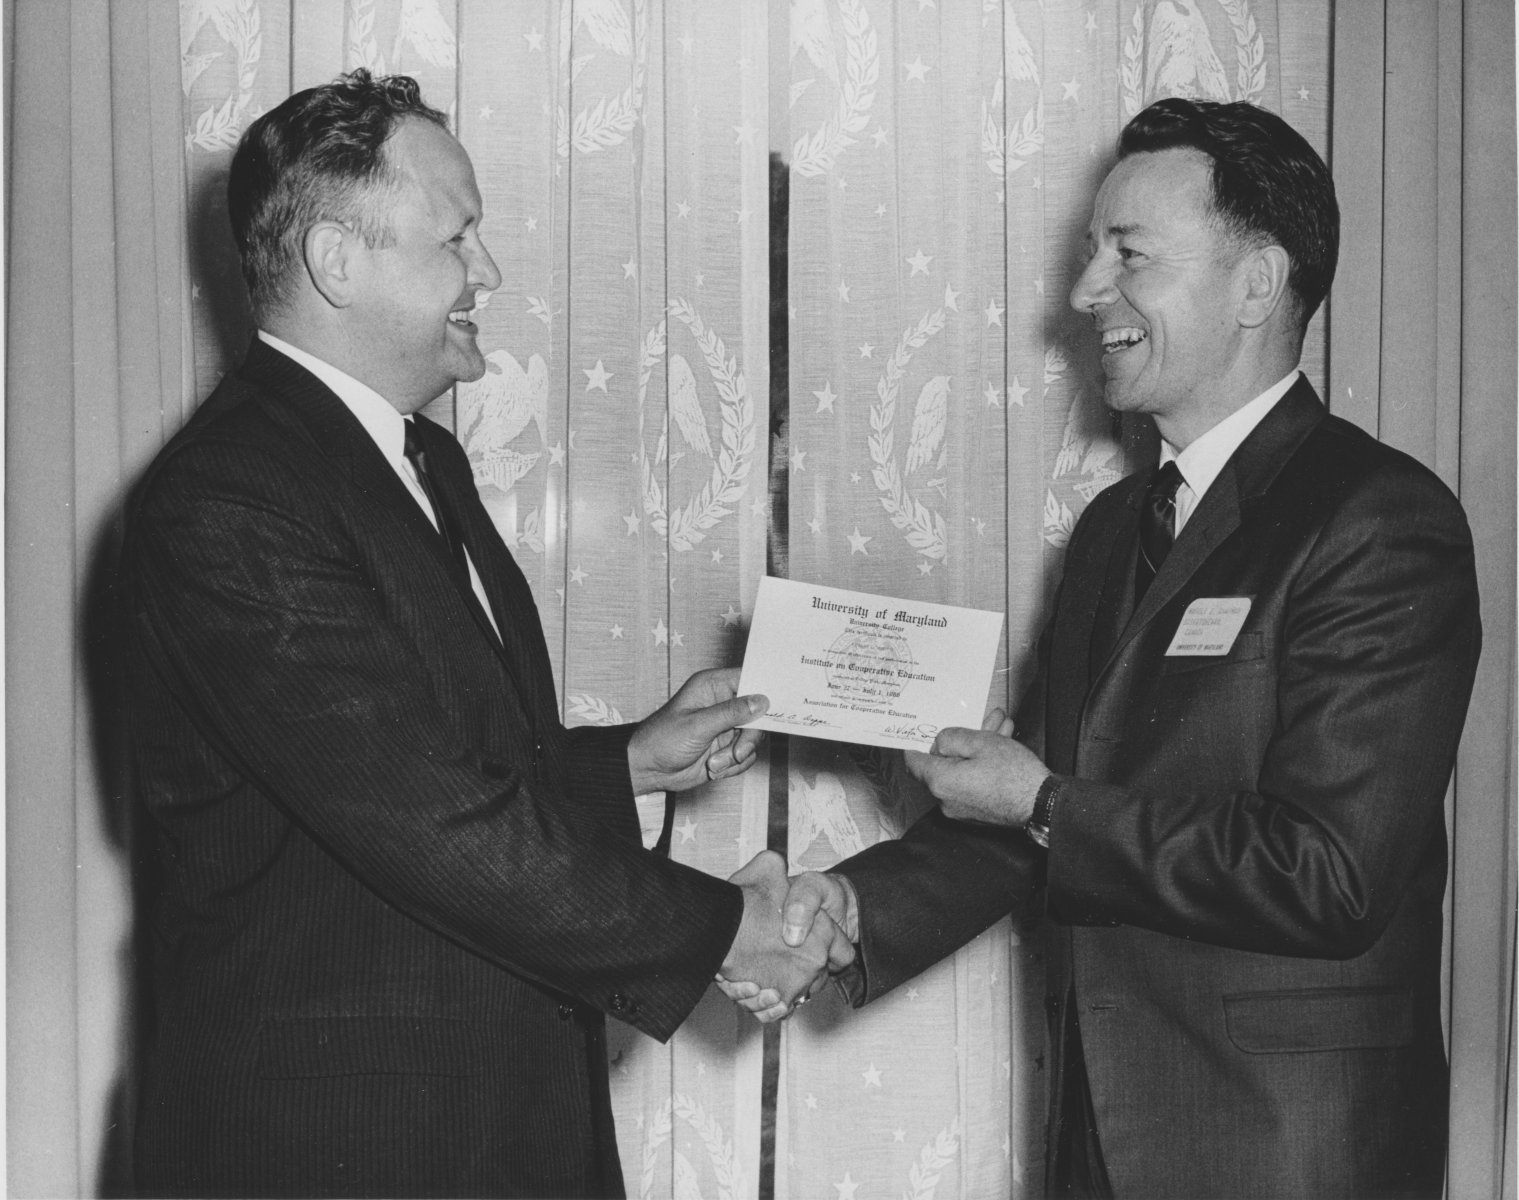 Glenn Anderson of Wisconsin (Left) and Harold E. Chapman of Saskatchewan were President and Vice President of the first ACE board, signalling the collaboration of co-op educators across borders that defines ACE.